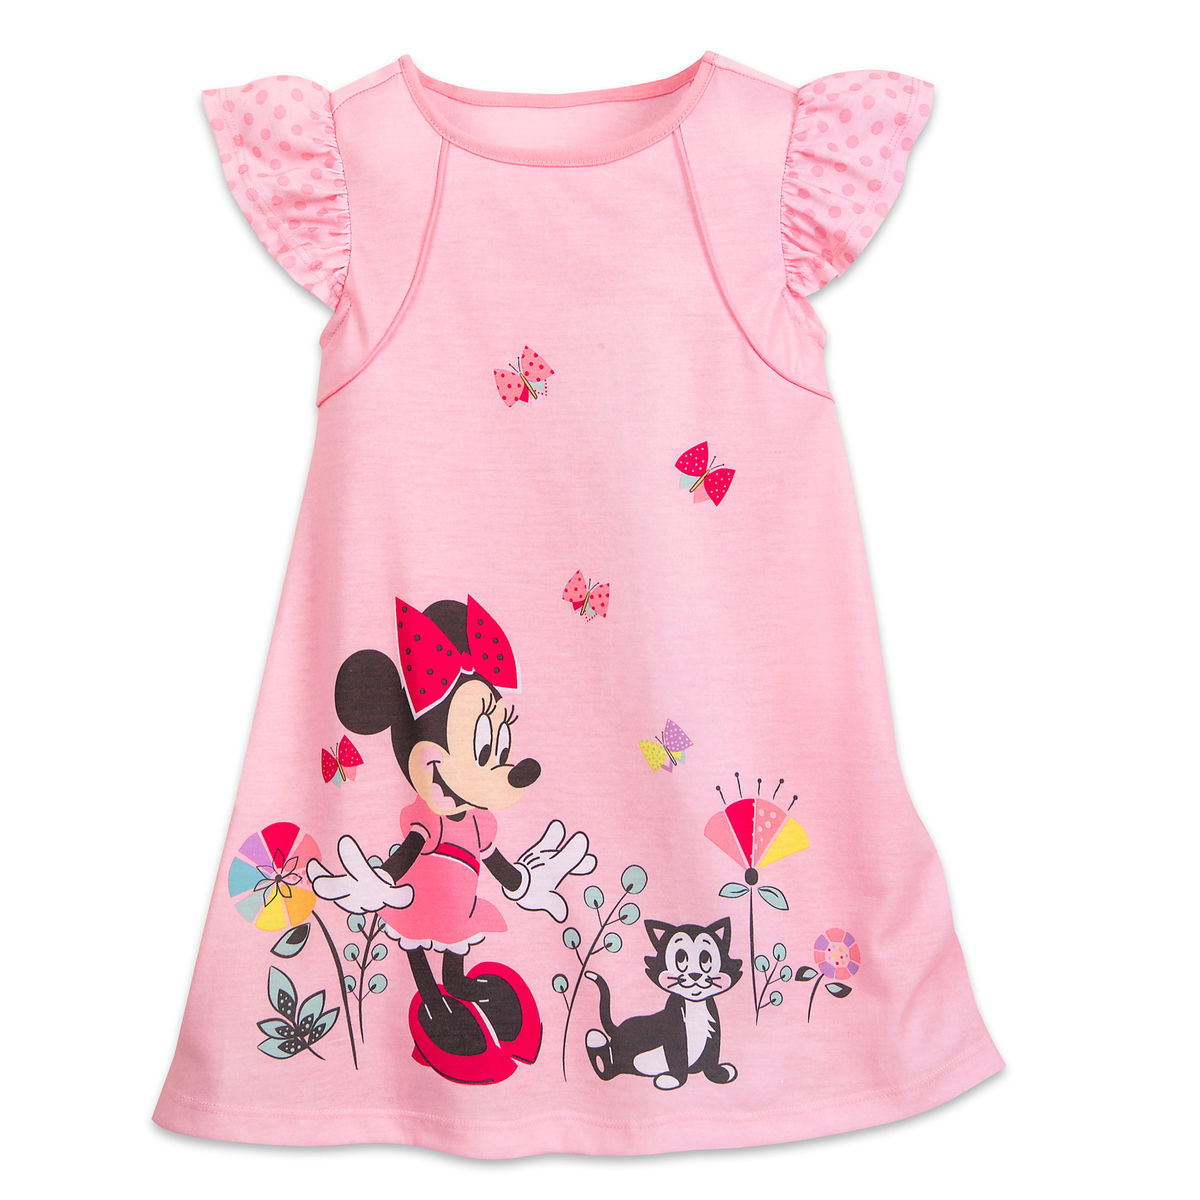 minnie mouse nightshirt for girls shopdisney